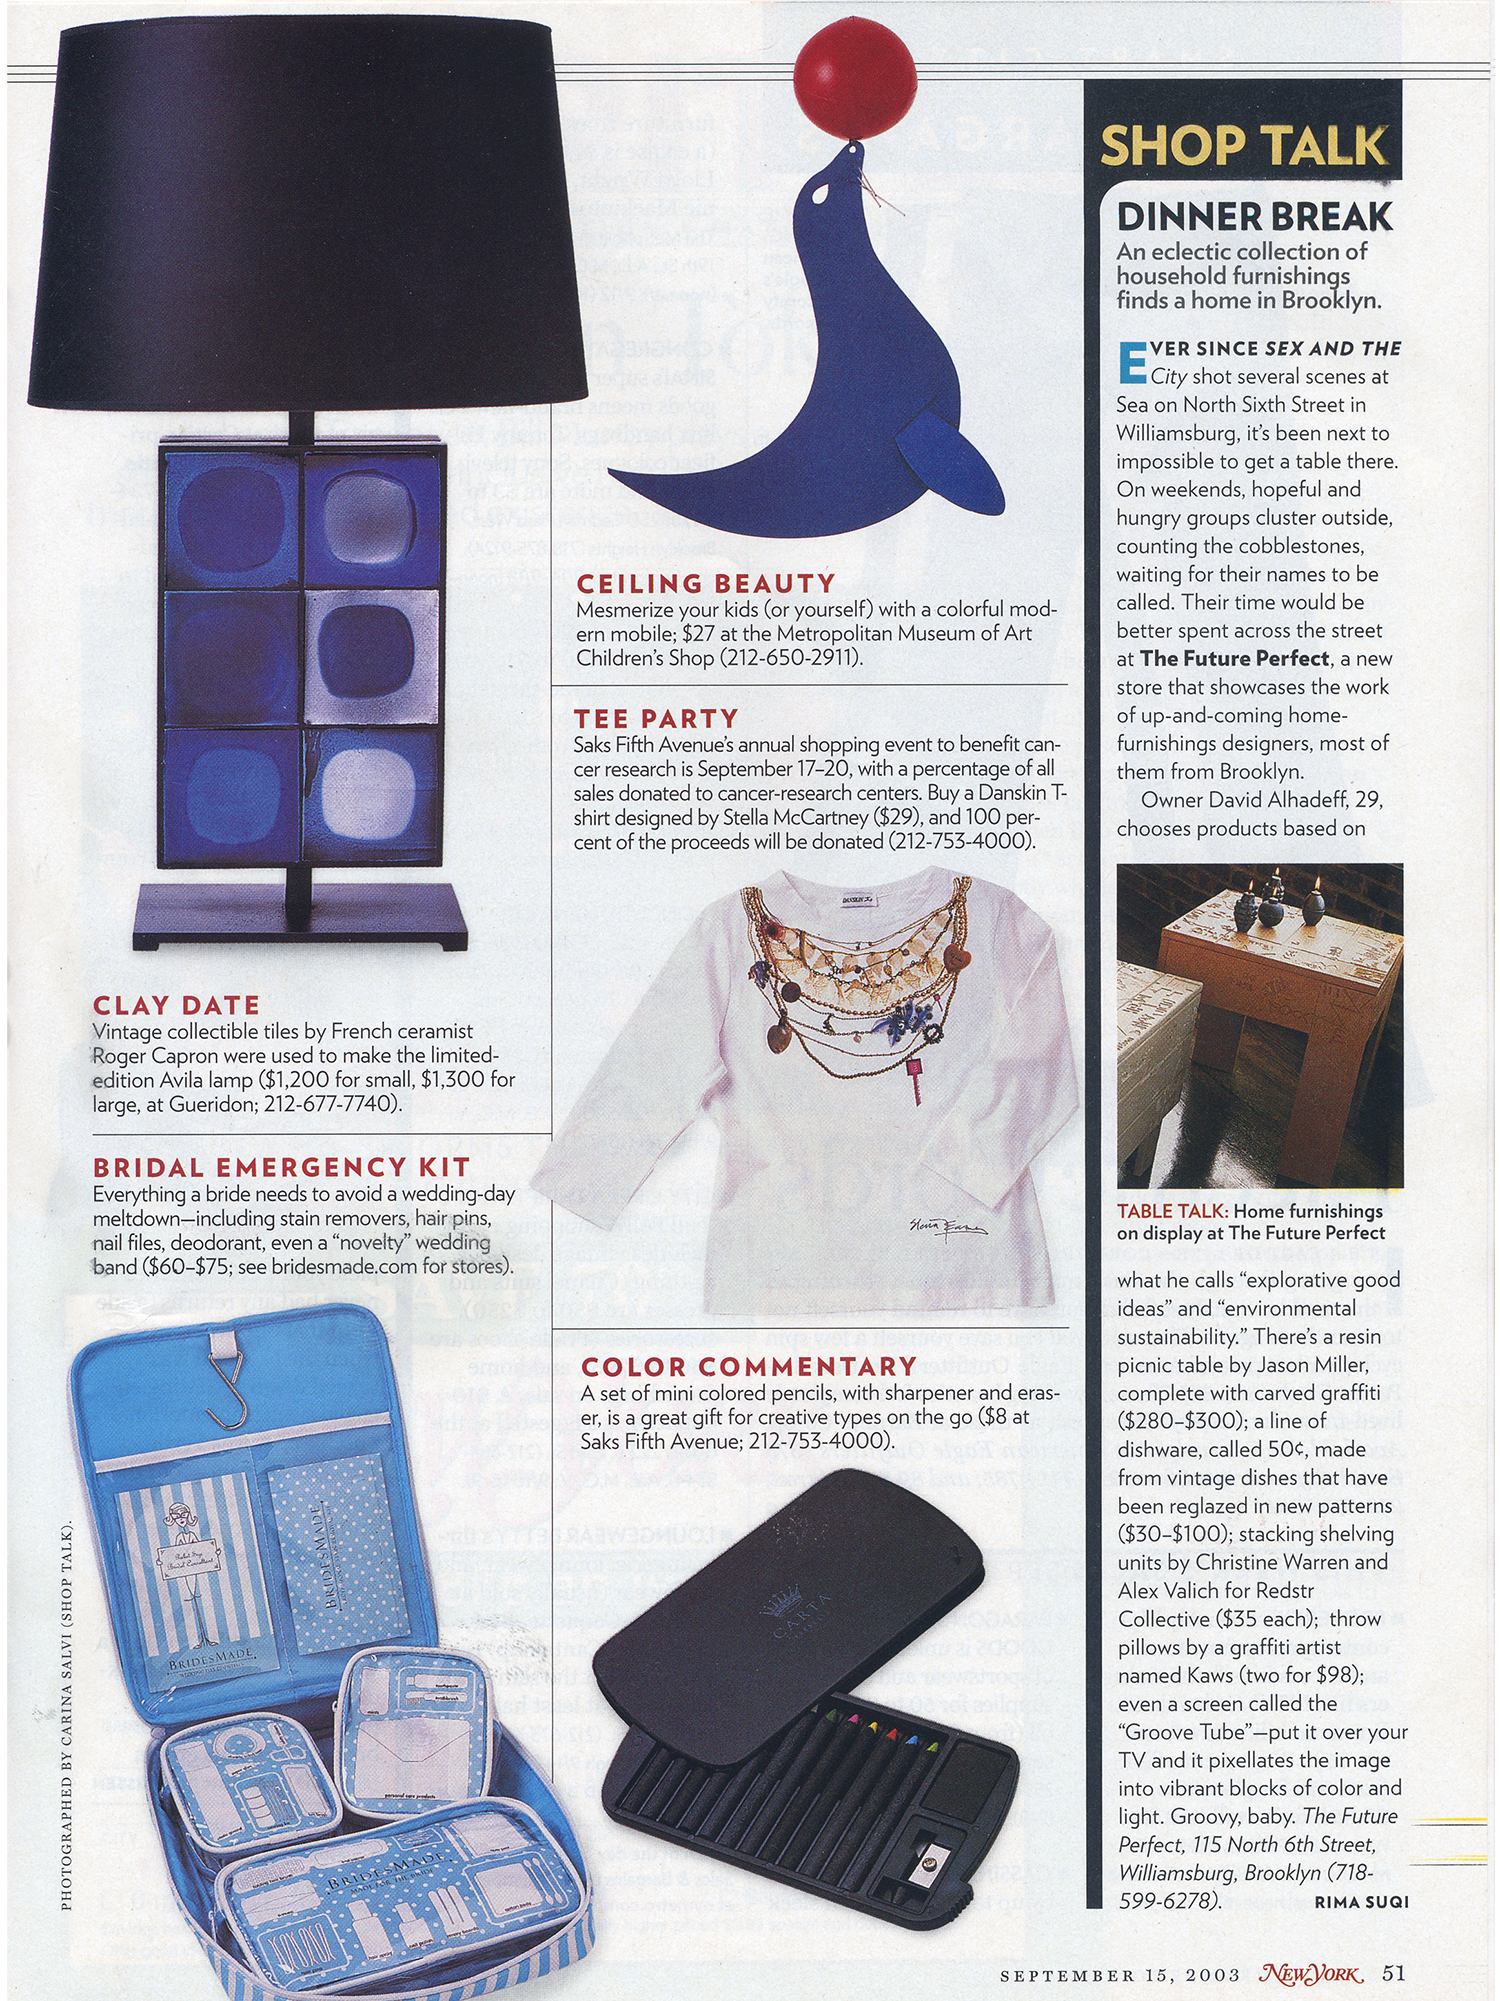 Grenade Oil Lamps pictured in the 'Shop Talk' article featuring The Future Perfect, a shop in Williamsburg Brooklyn.